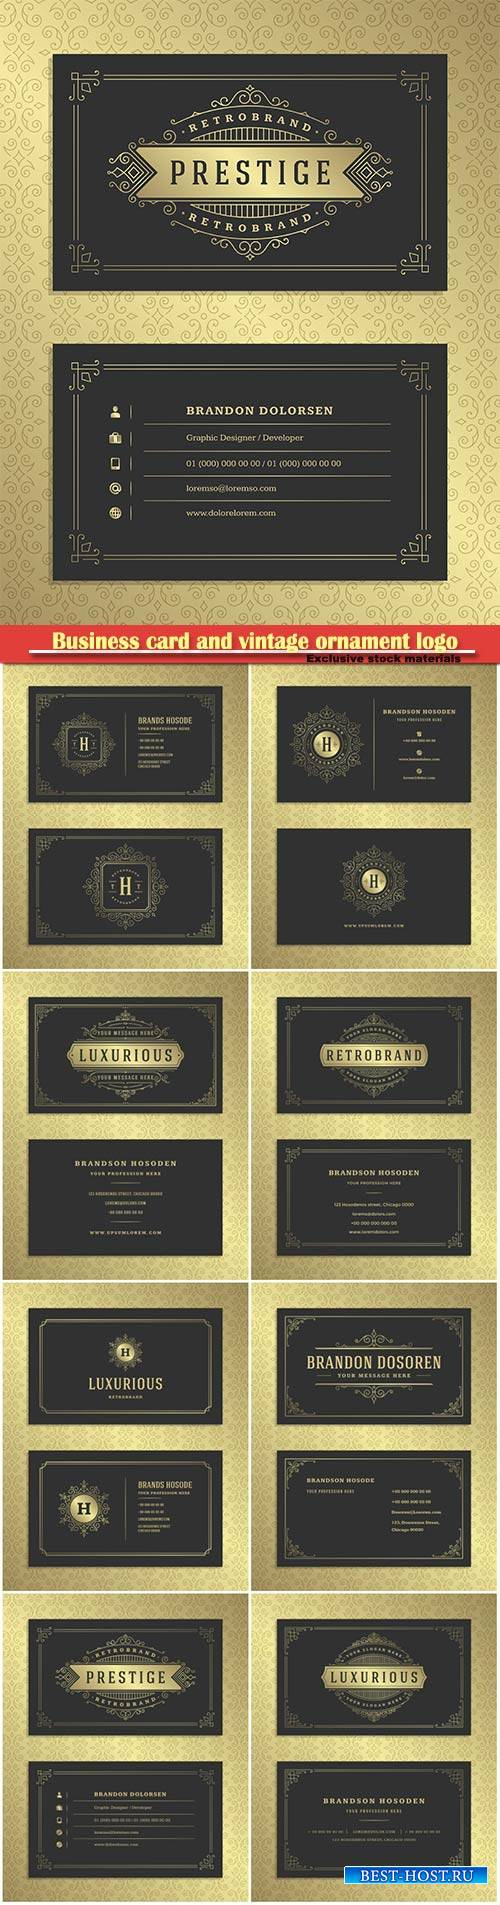 Luxury business card and vintage ornament logo vector template